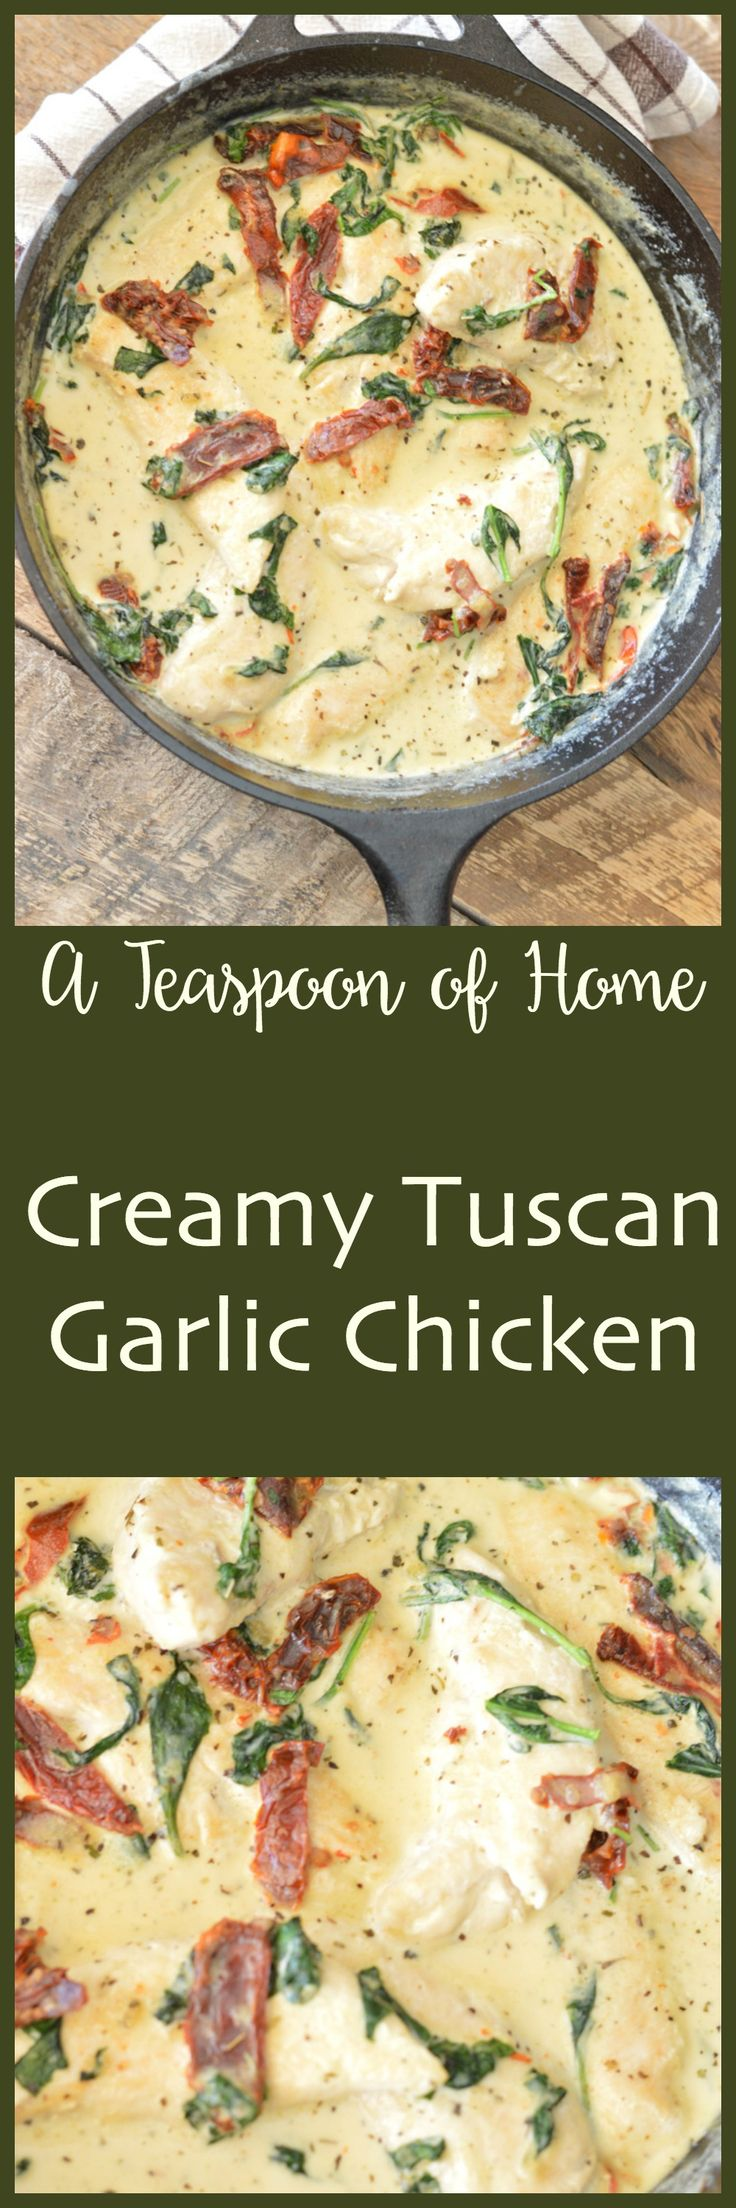 Creamy Tuscan Garlic Chicken by A Teaspoon of Home